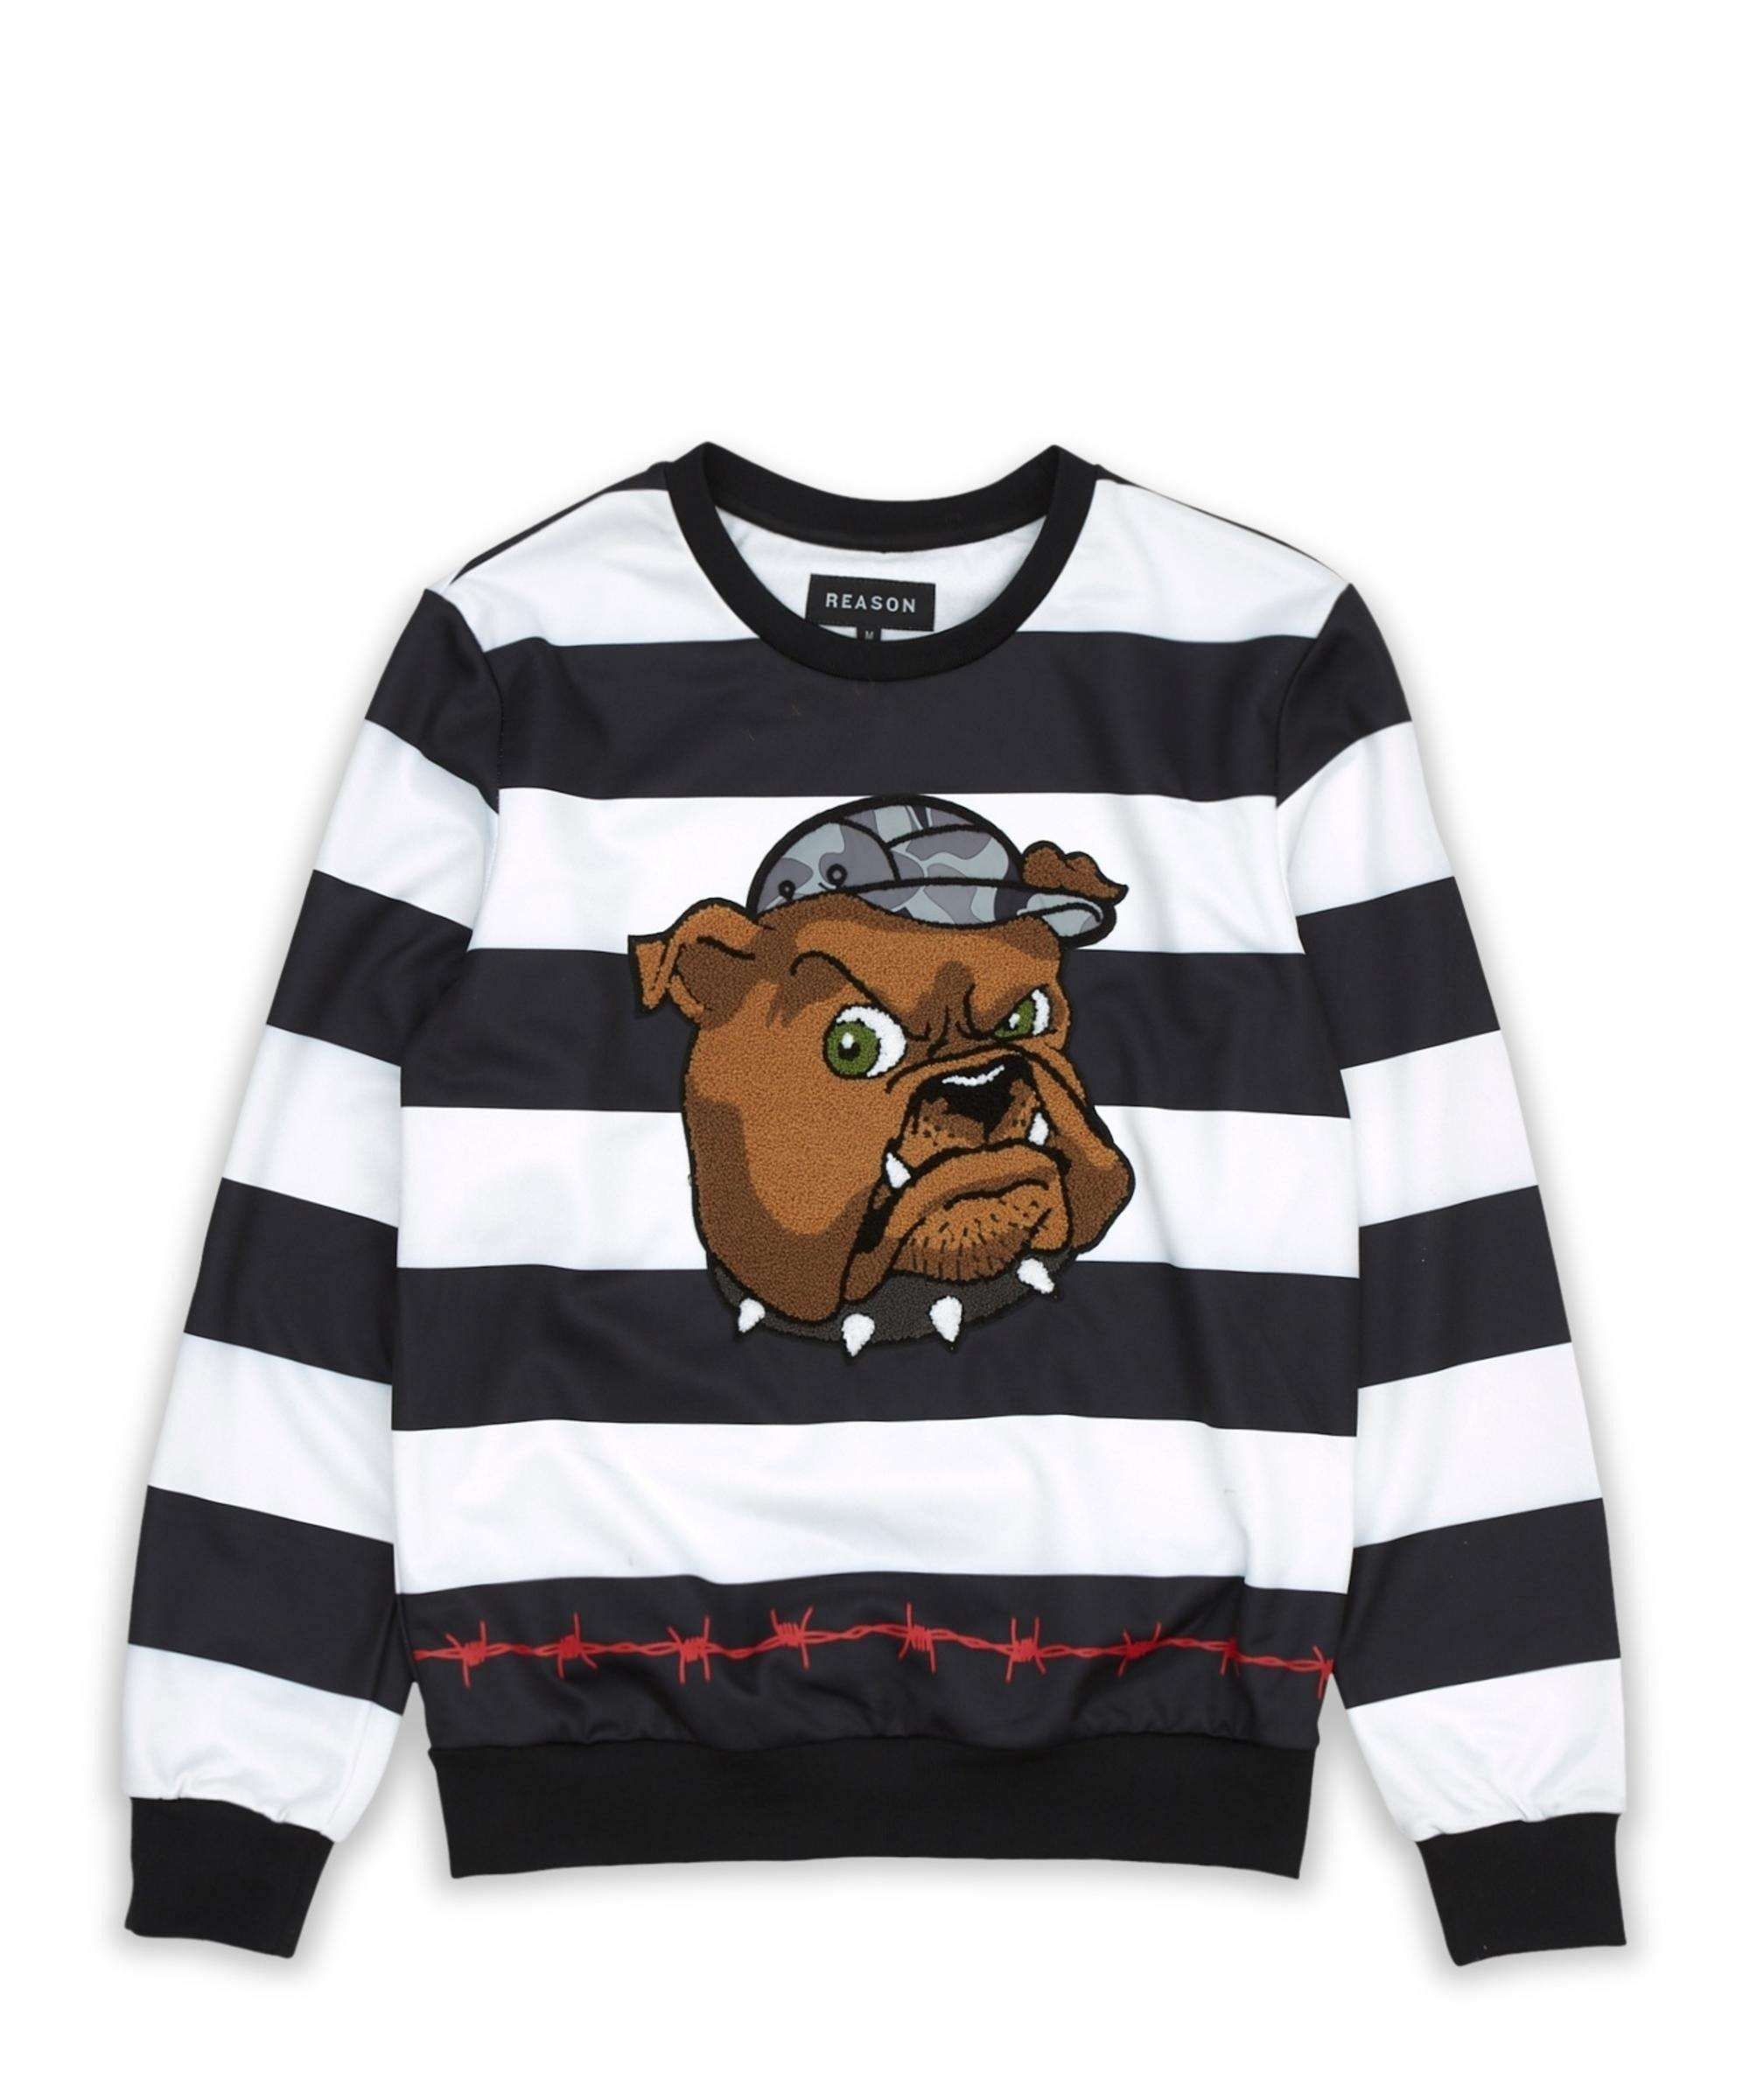 YARD CREWNECK Reason Clothing